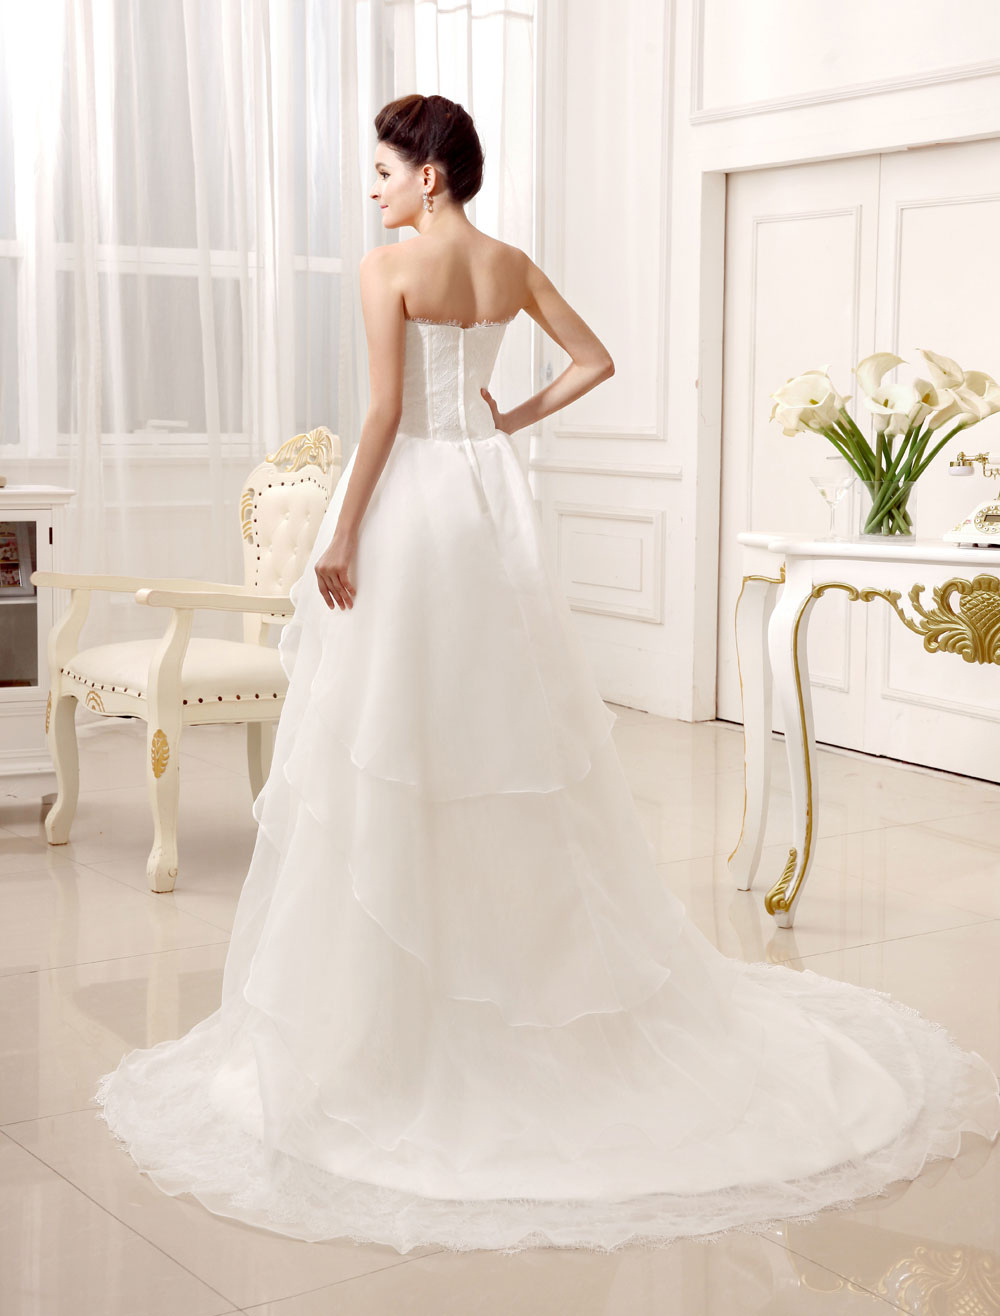 2a7b0ef2afa ... Ivory A-line Sweetheart Neck Strapless Tiered Bridal Wedding Gown-No.4  ...